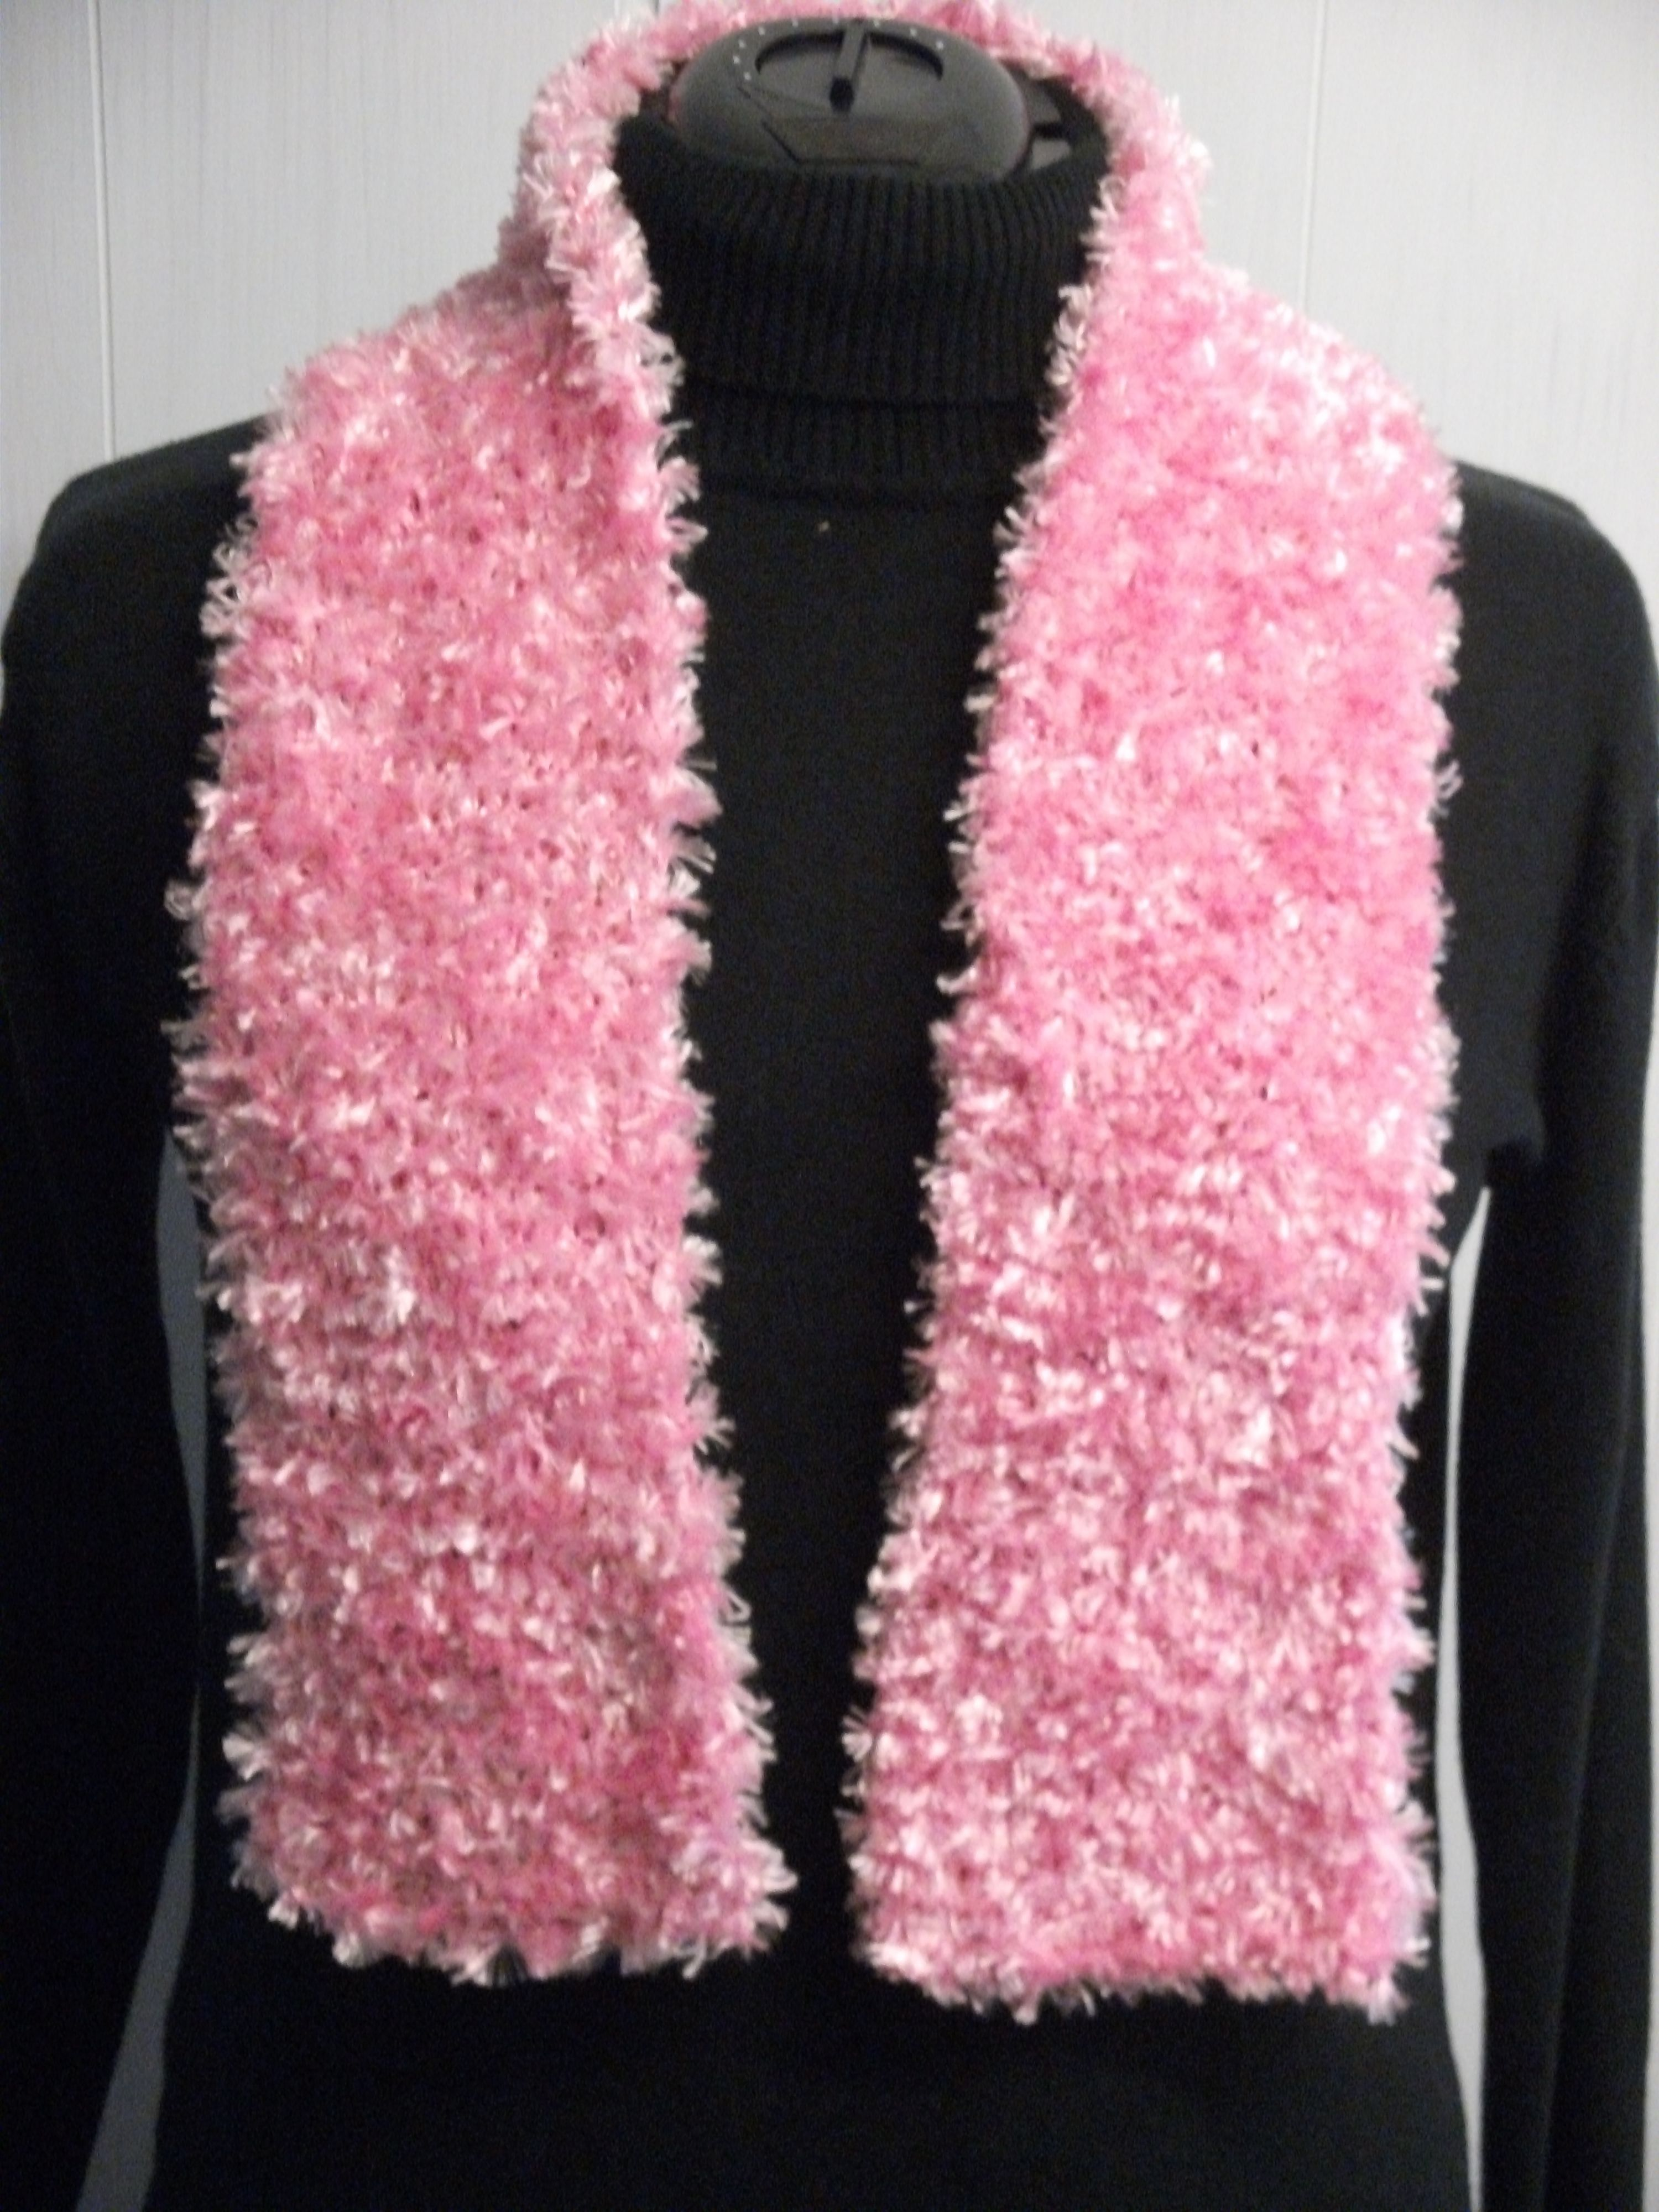 One of two similar scarves for Shoeboxes made using a donated ...